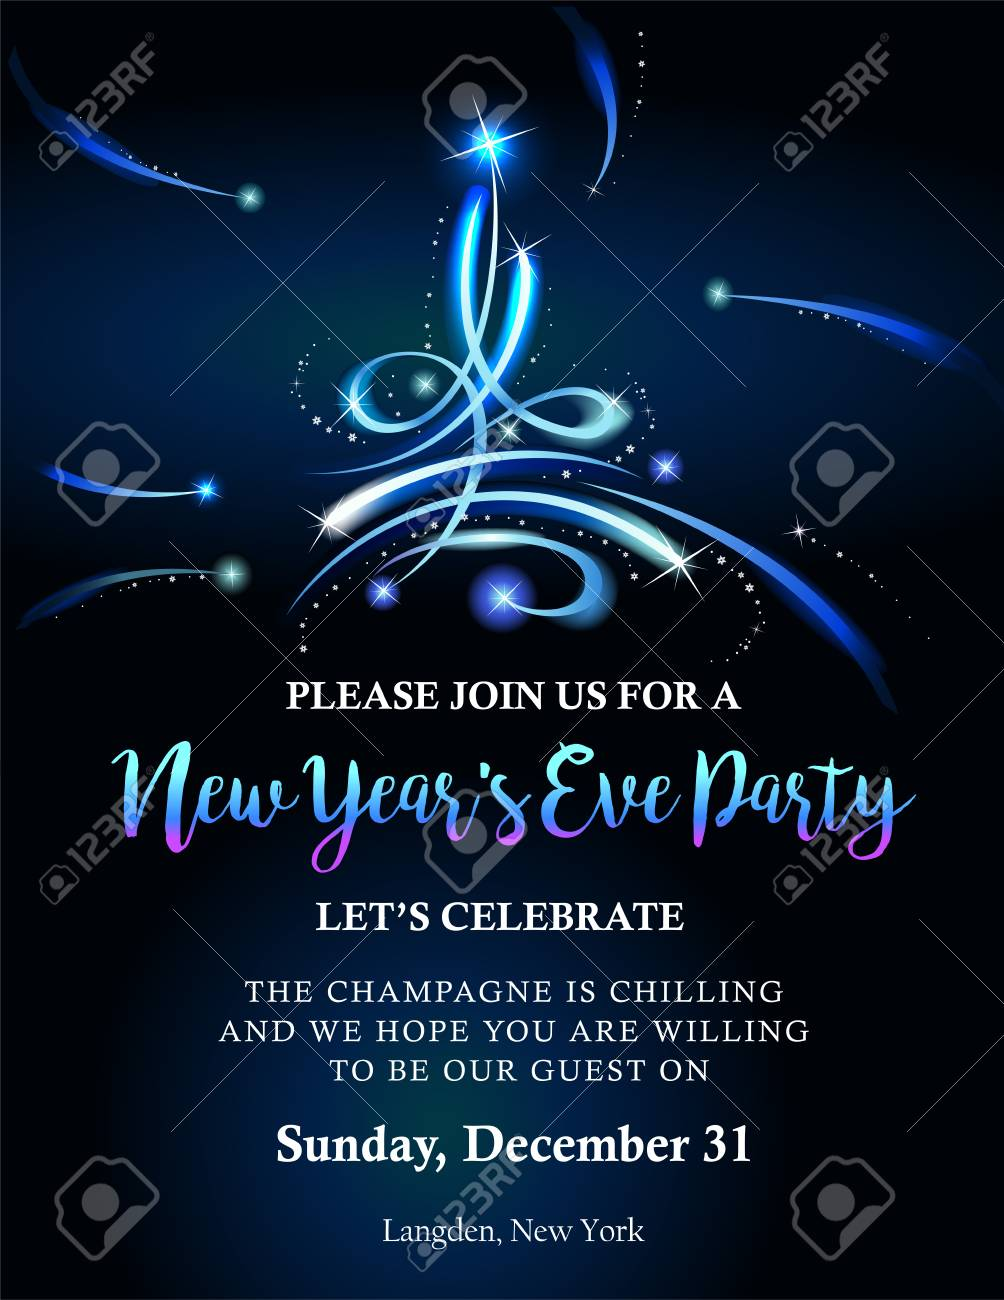 new year party invitation stock vector 88833548